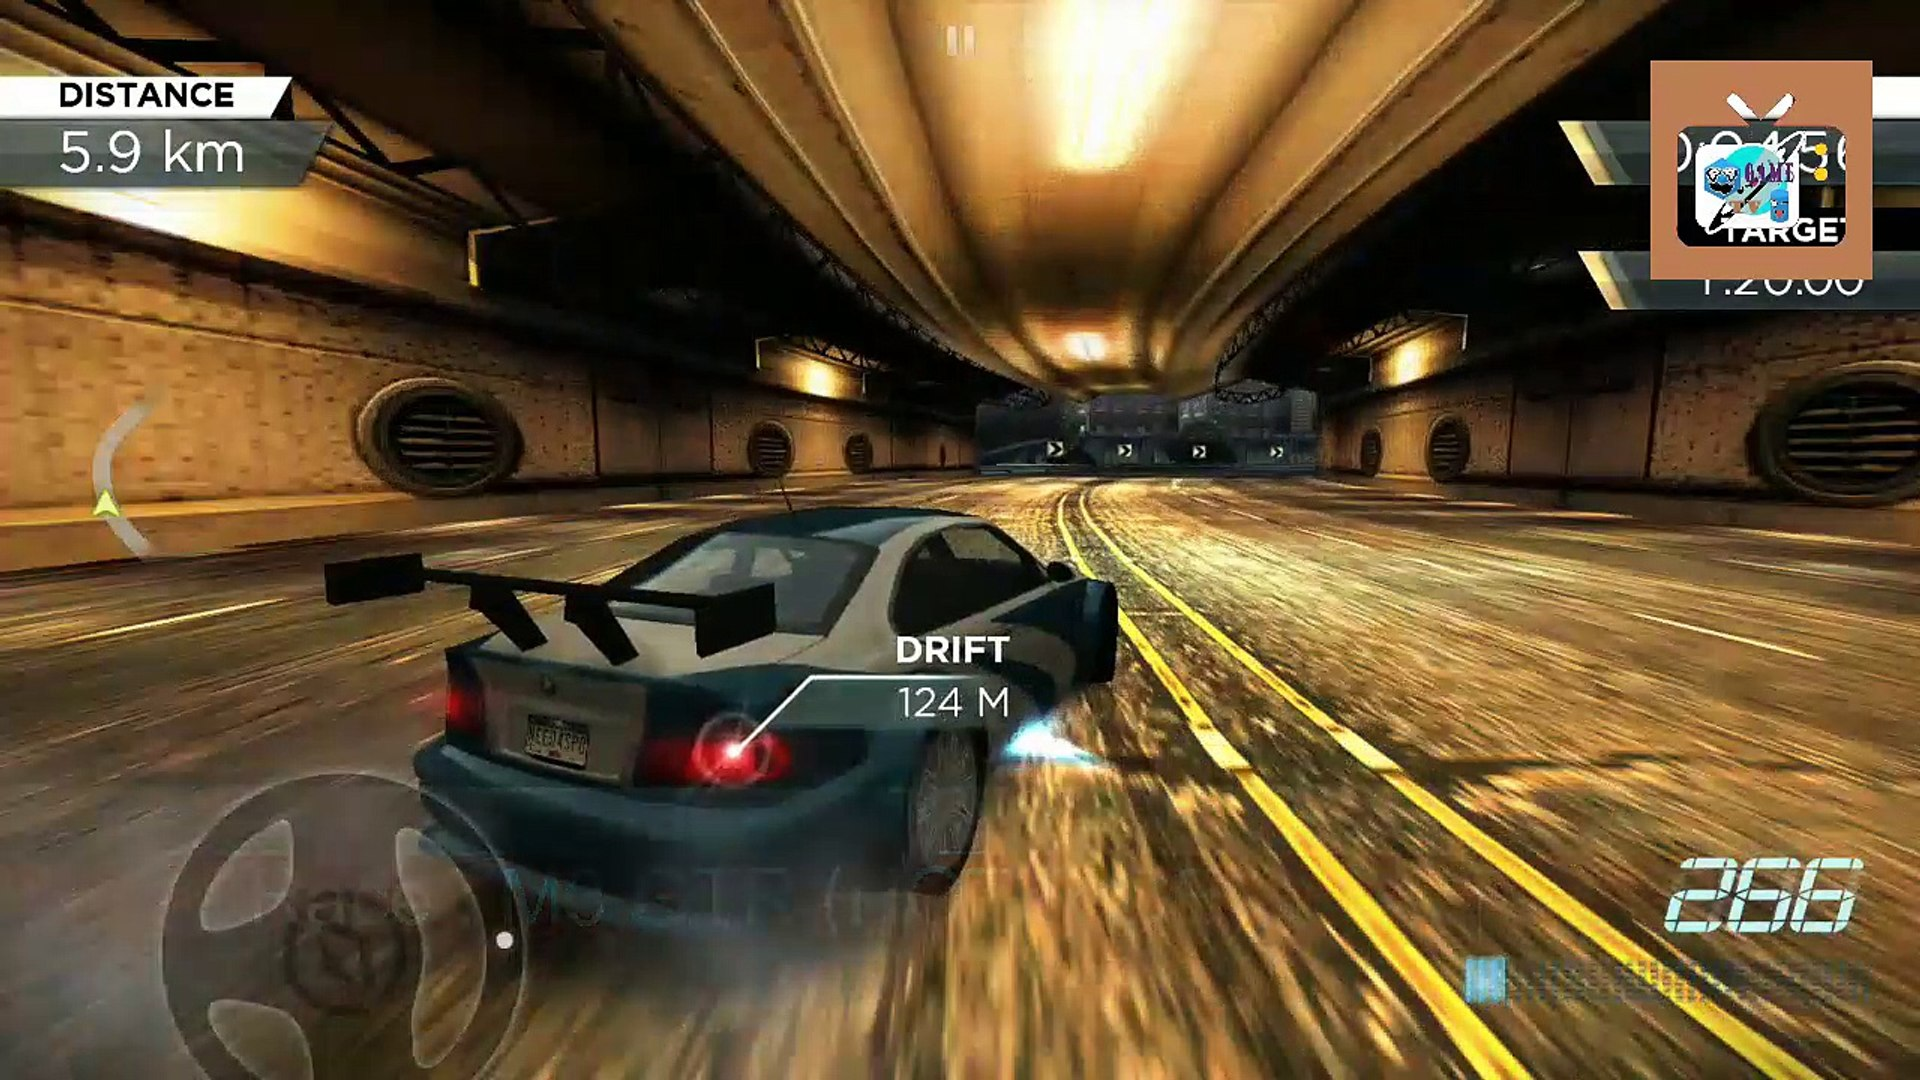 Nfs Most Wanted Bmw M3 Gtr Hot Ride Video Dailymotion